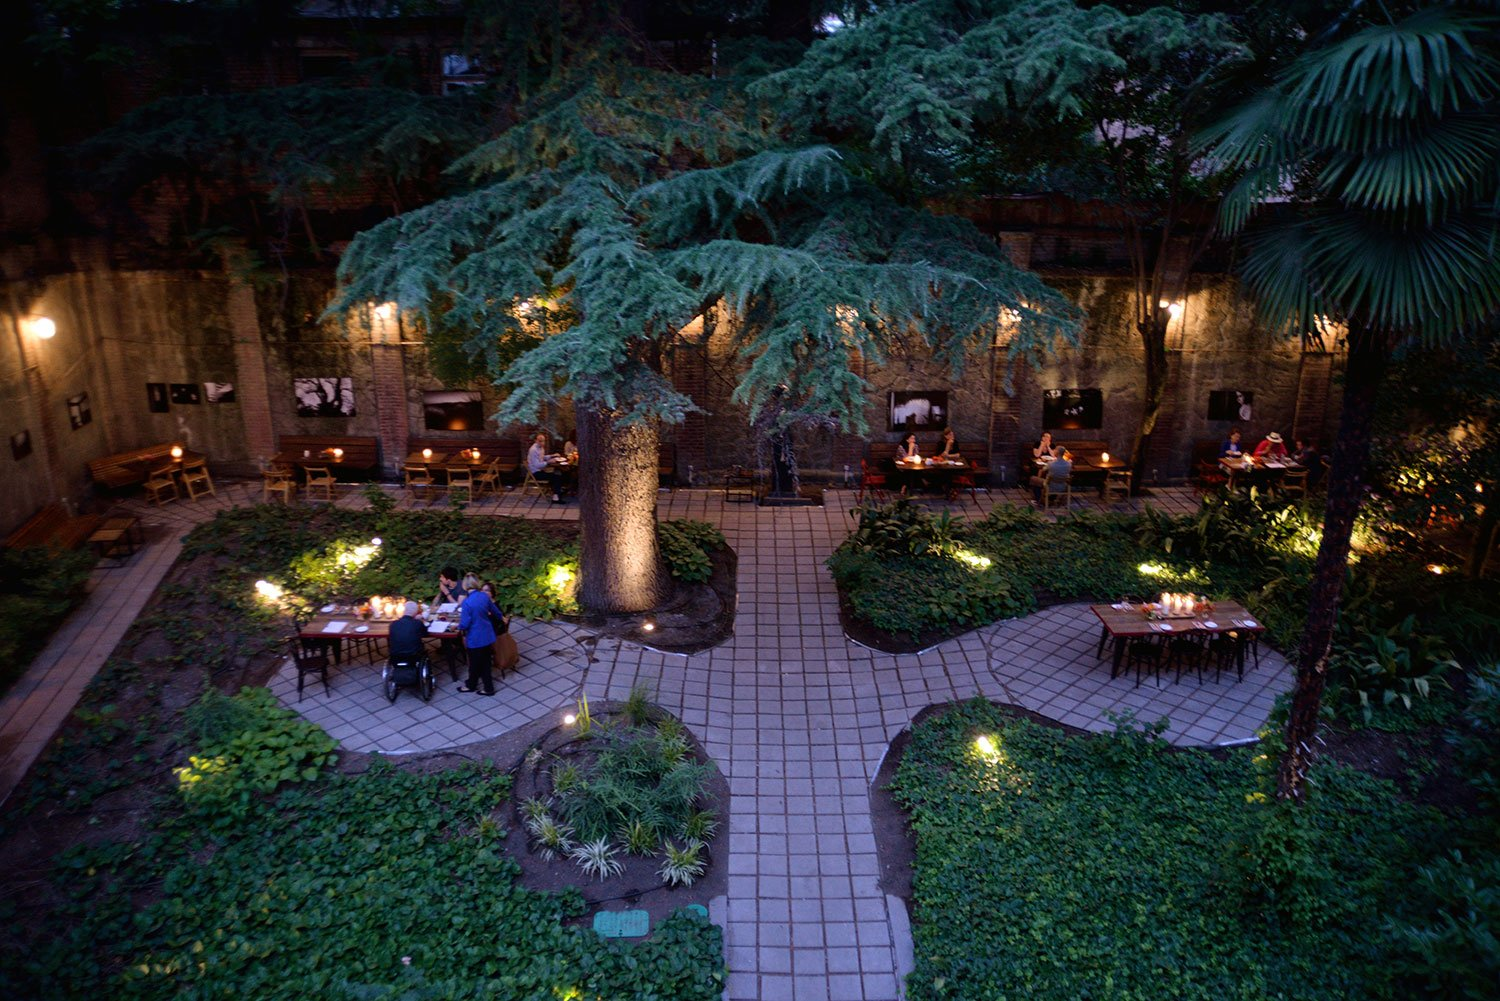 The courtyard at Cafe Littera